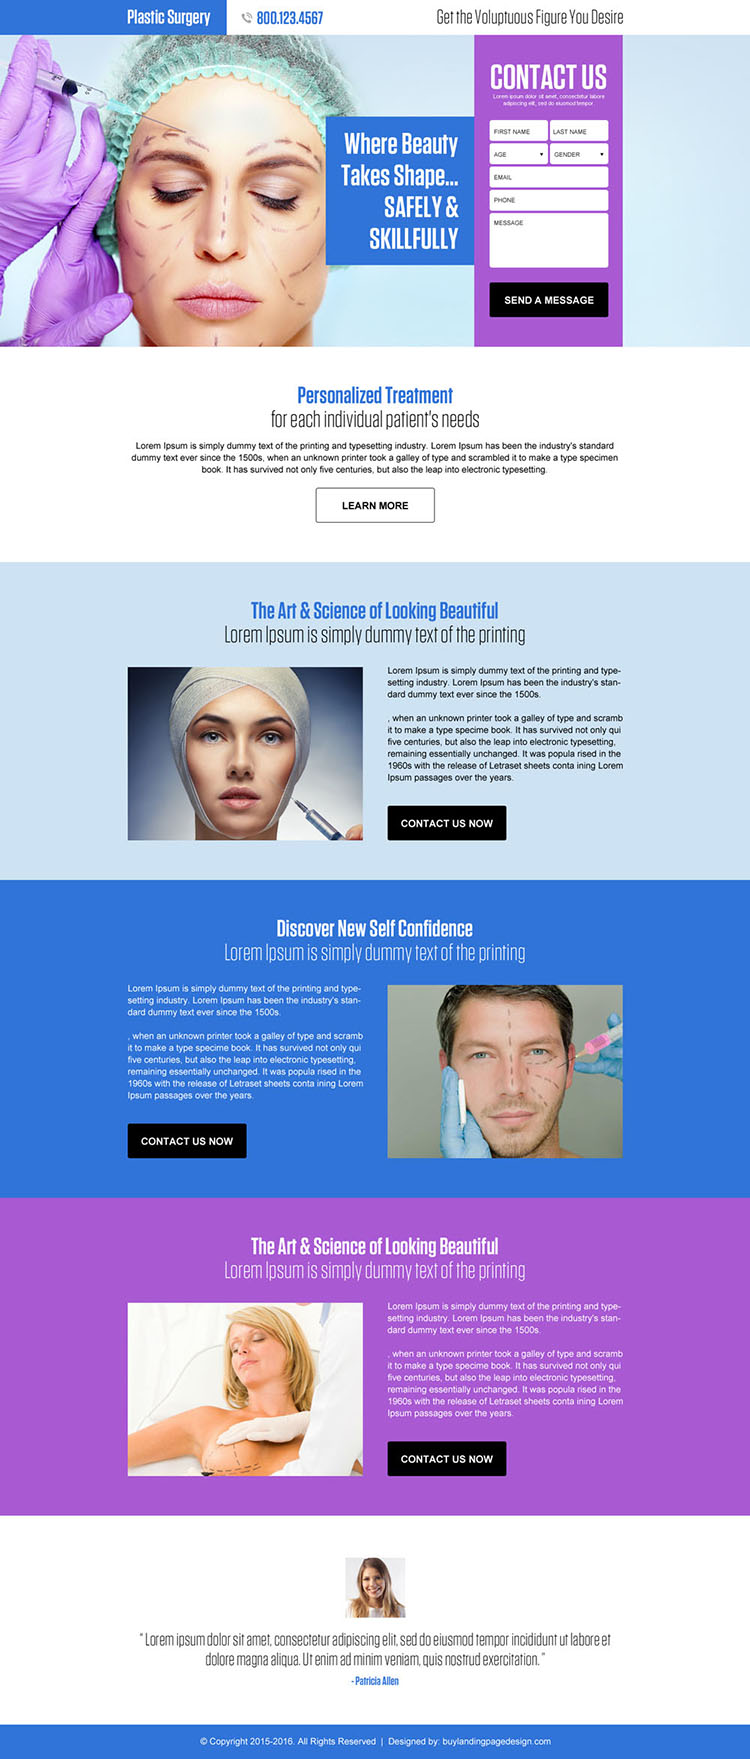 plastic surgery lead generating converting landing page design